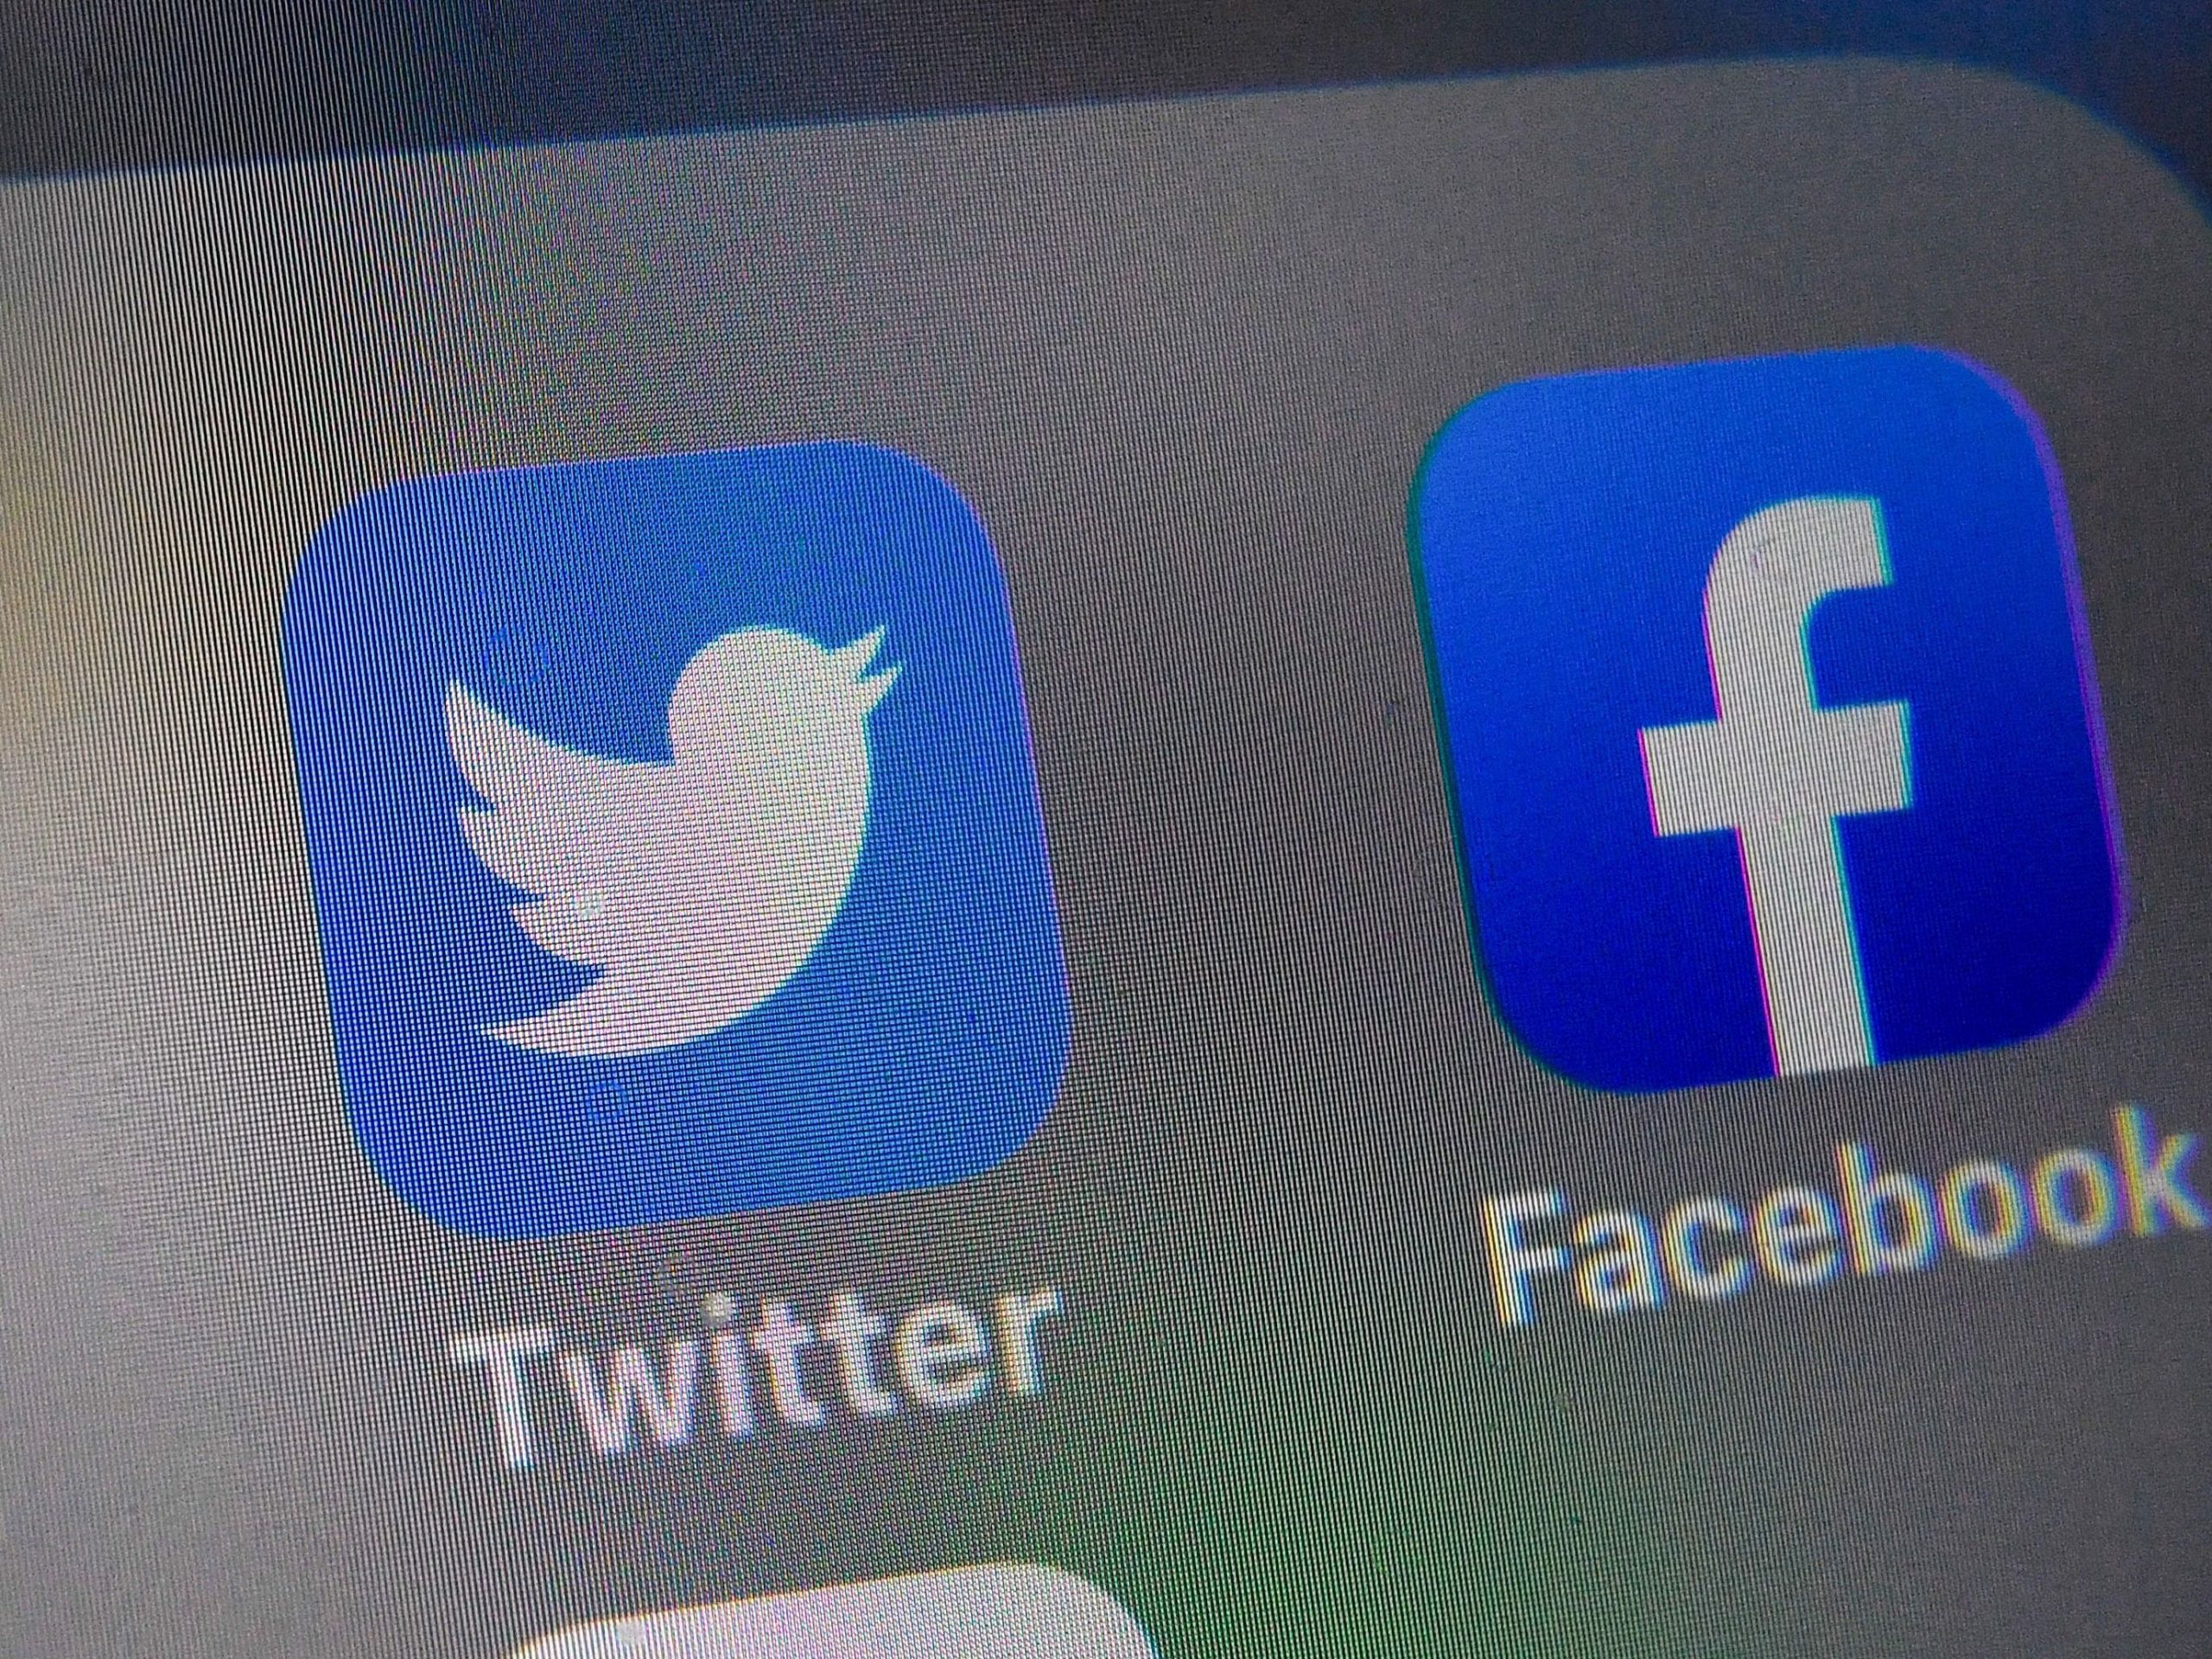 Facebook, Twitter vow vigilance on Election Day misinformation efforts